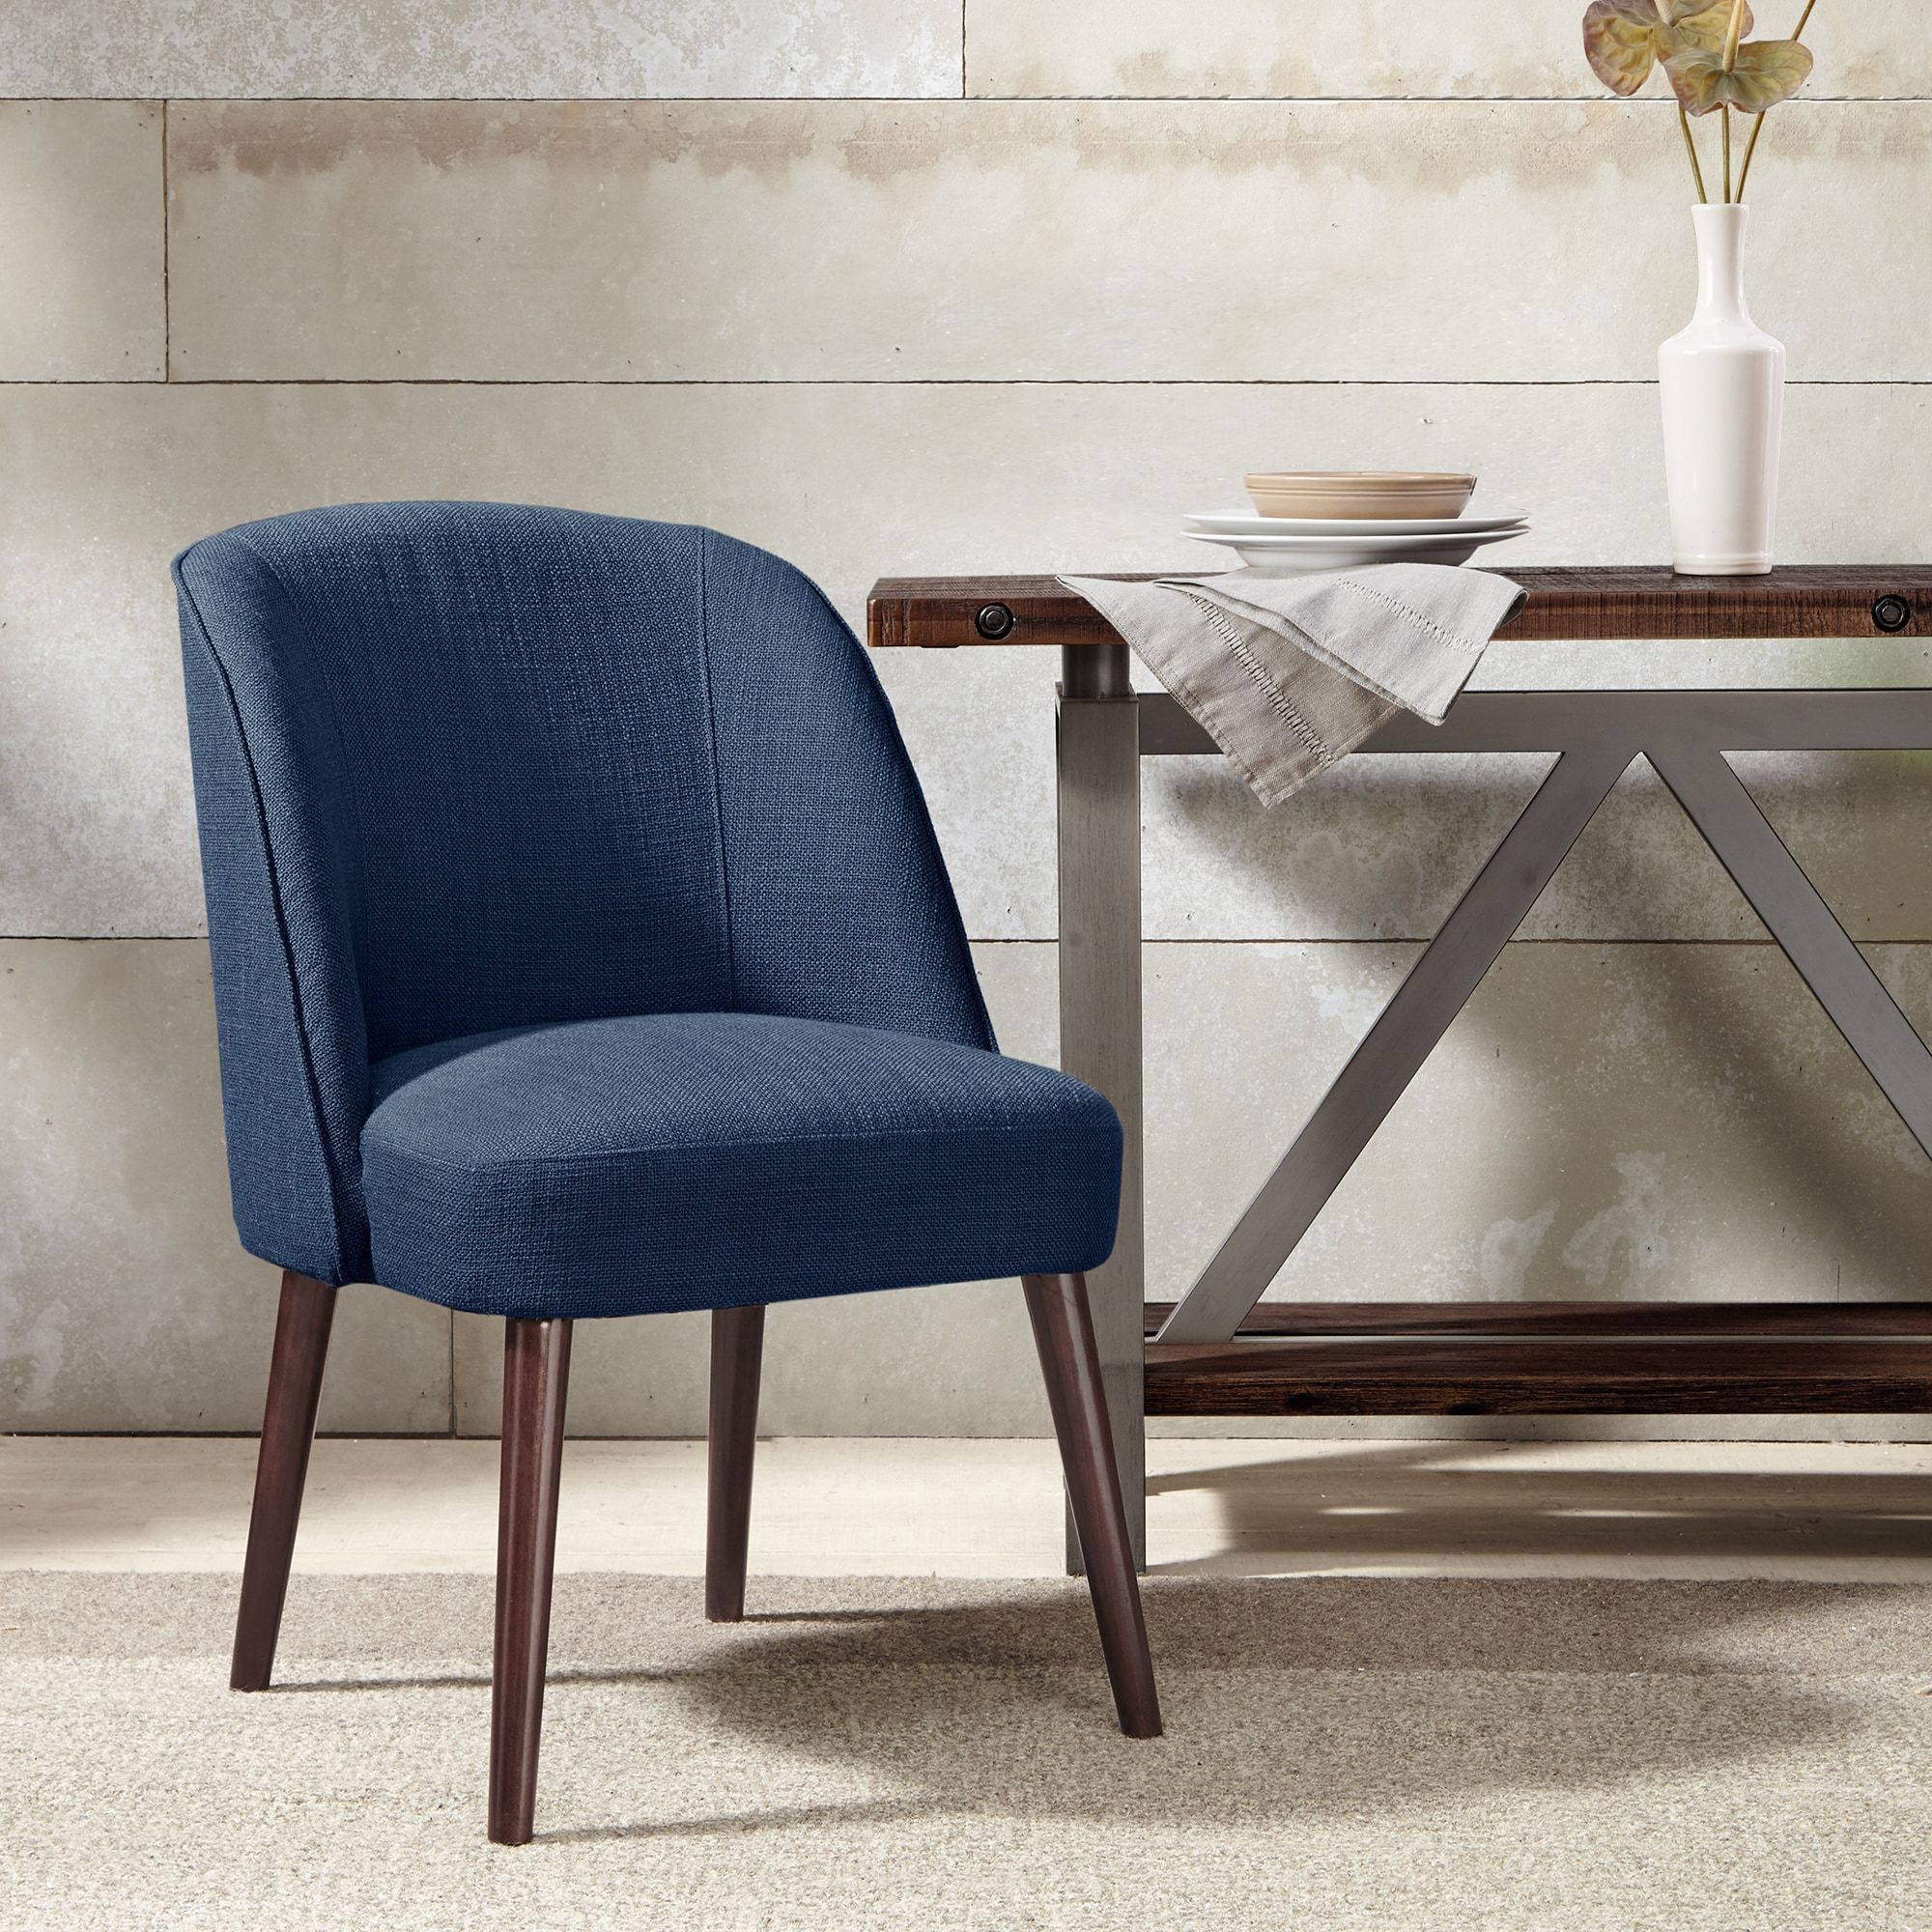 Madison Park Larkin Blue Rounded Back Dining Chair